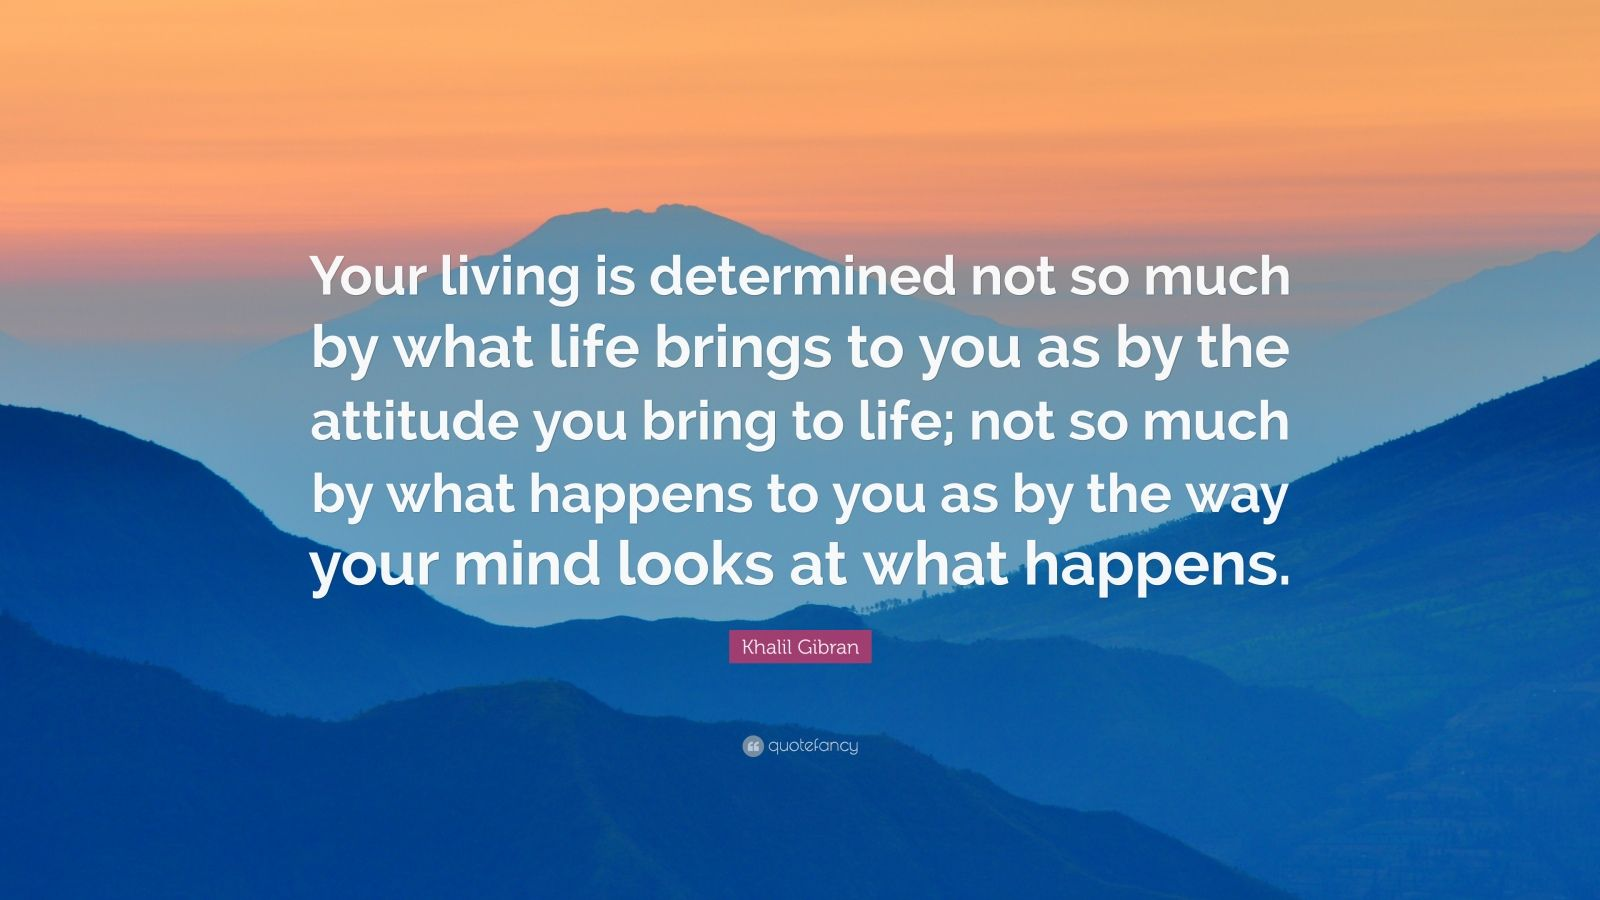 """Khalil Gibran Quote: """"Your living is determined not so much by what life brings to you as by the attitude you bring to life; not so much by what happens to you as by the way your mind looks at what happens."""""""